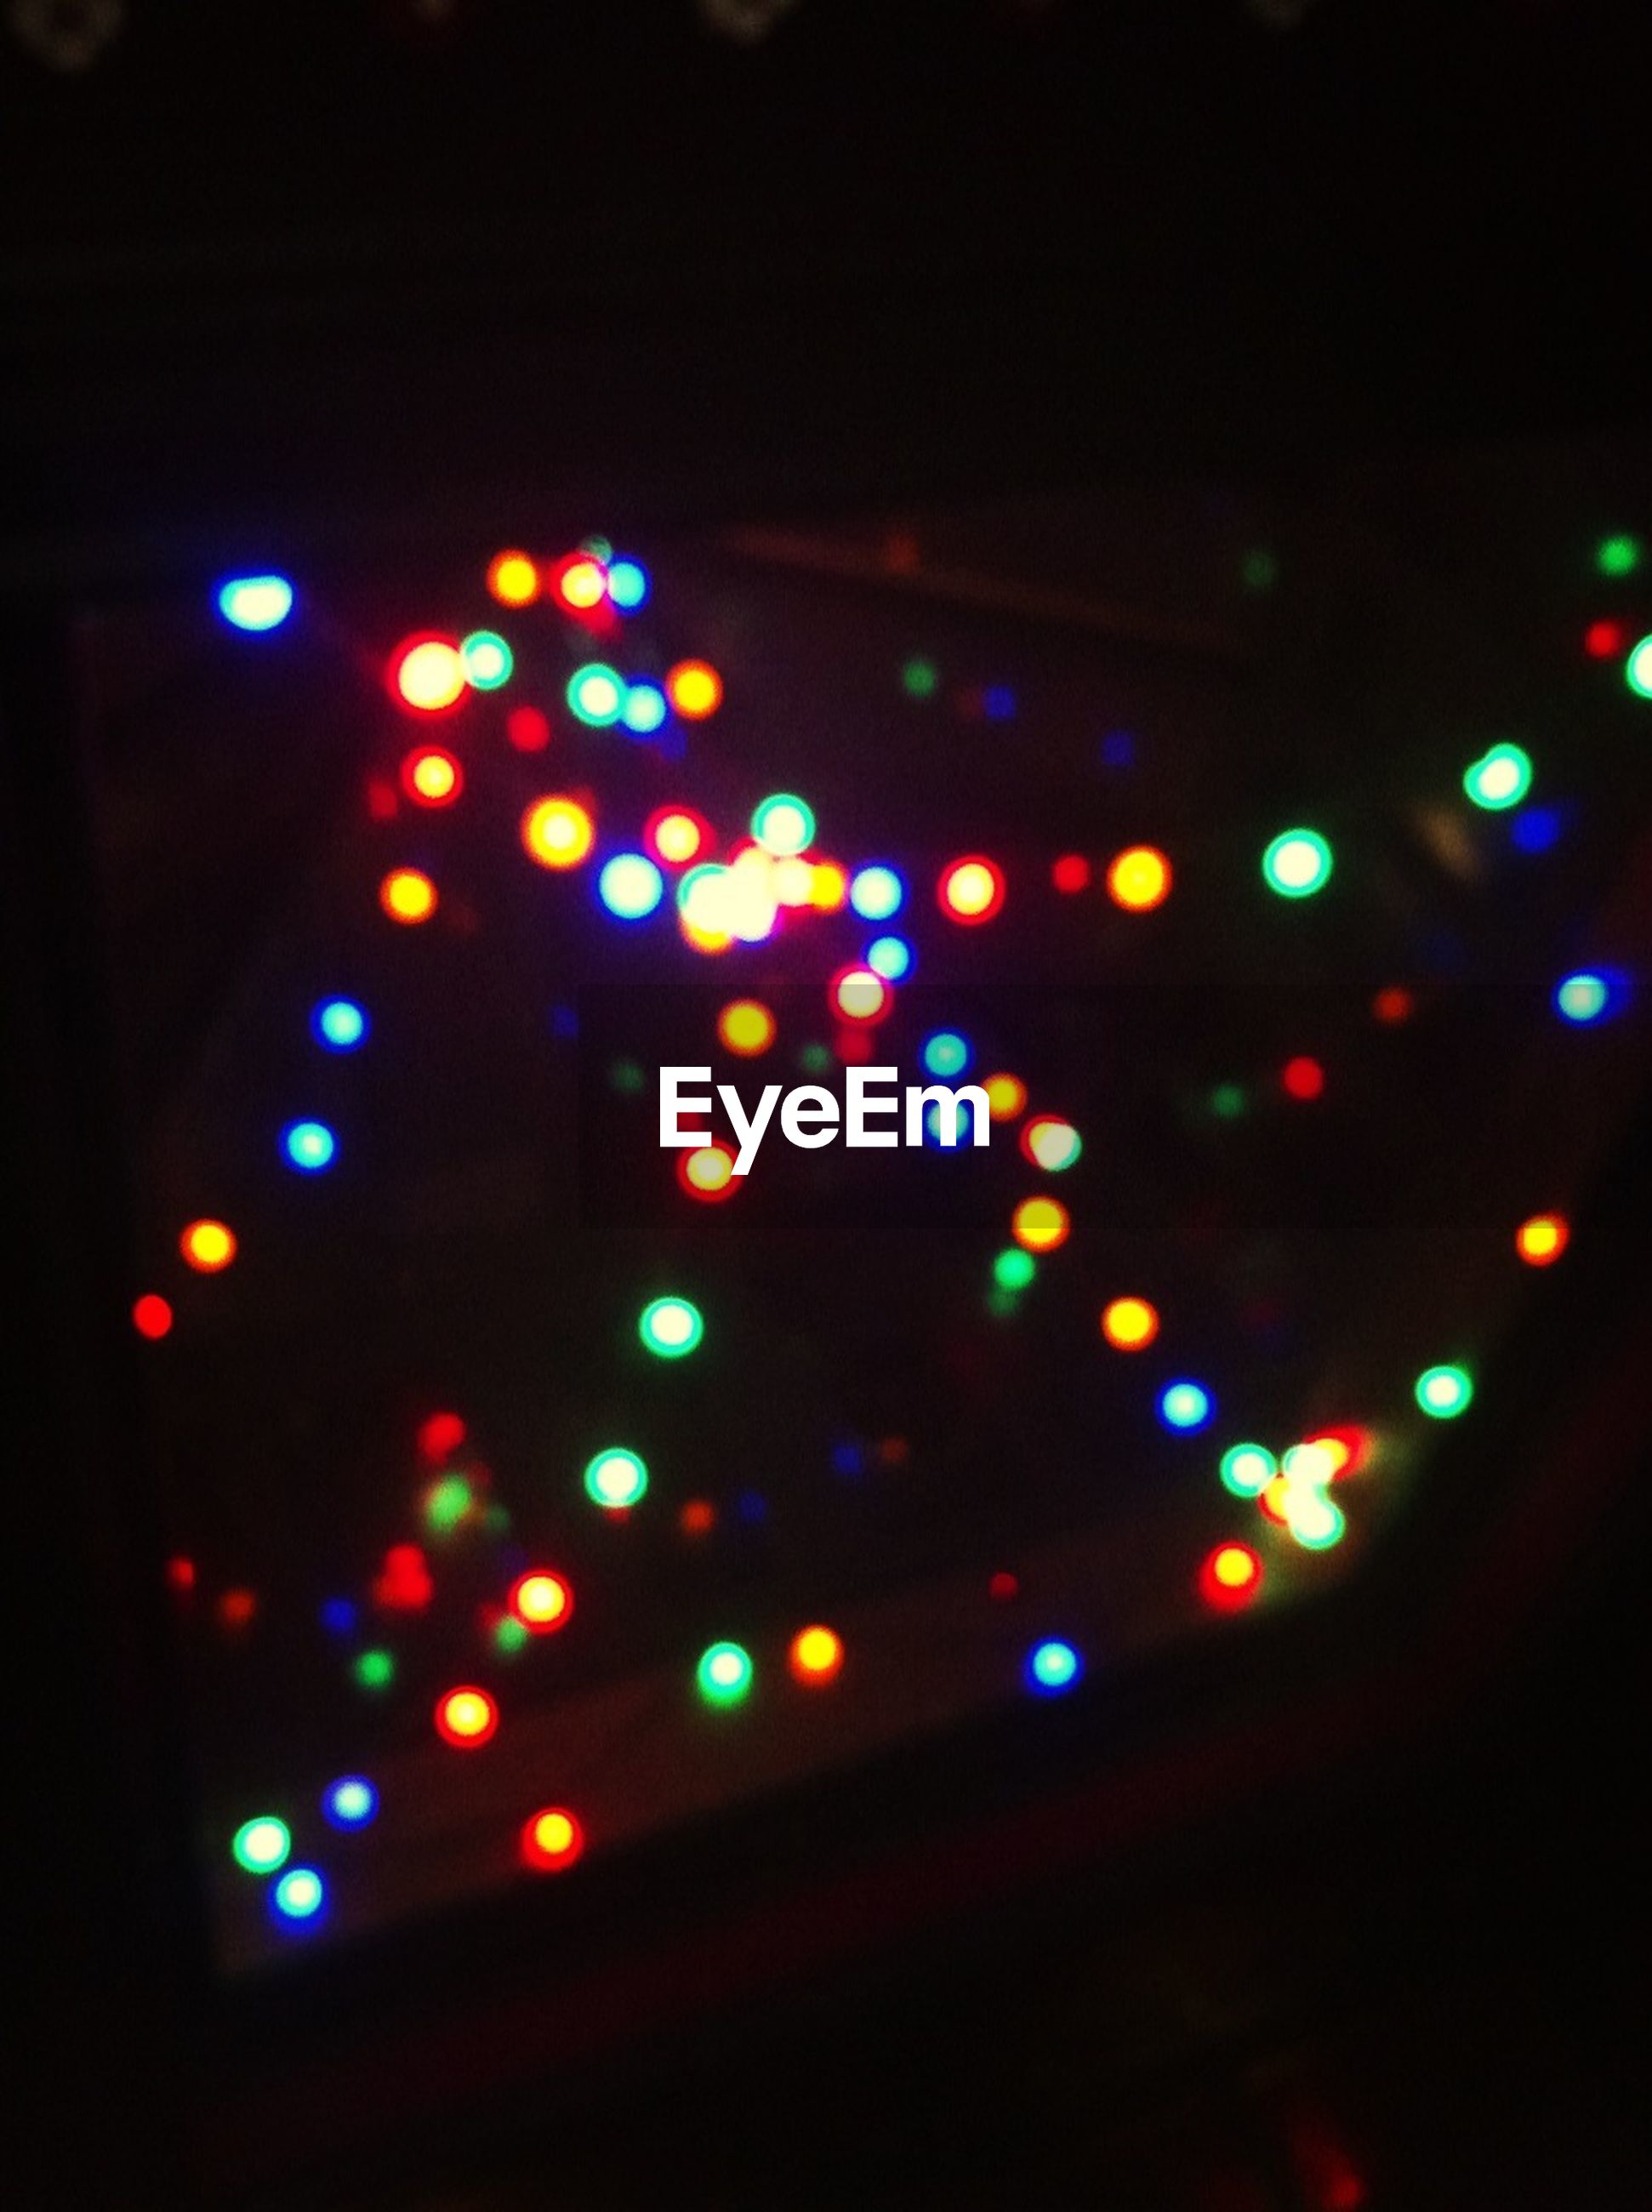 illuminated, night, multi colored, defocused, lighting equipment, indoors, glowing, light - natural phenomenon, decoration, celebration, colorful, circle, light, no people, christmas, light effect, dark, close-up, lens flare, pattern